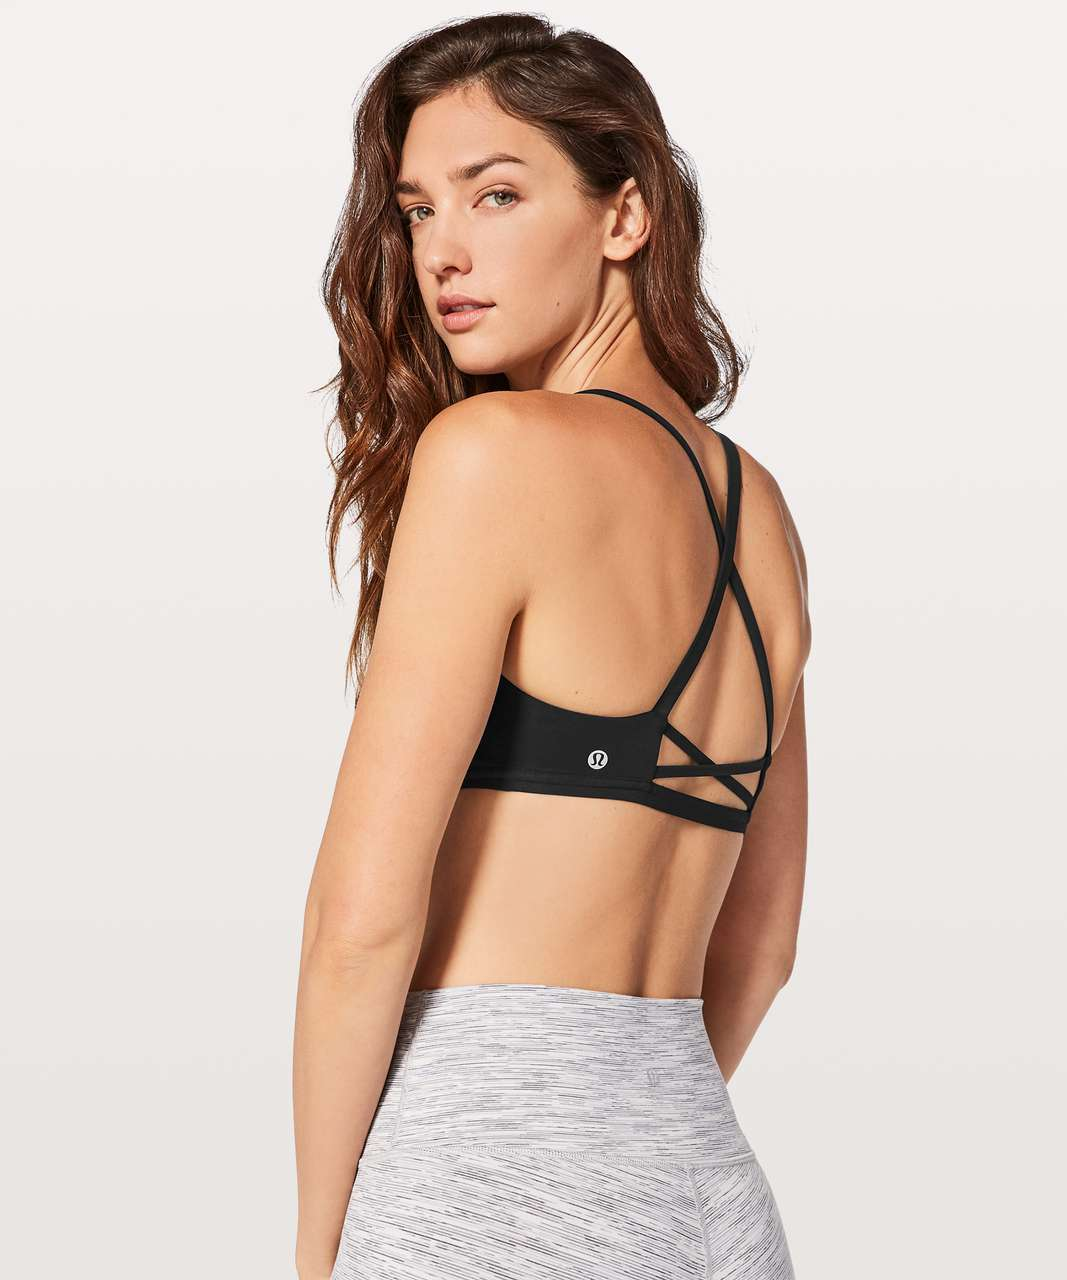 Lululemon Laced With Intent Bra - Black